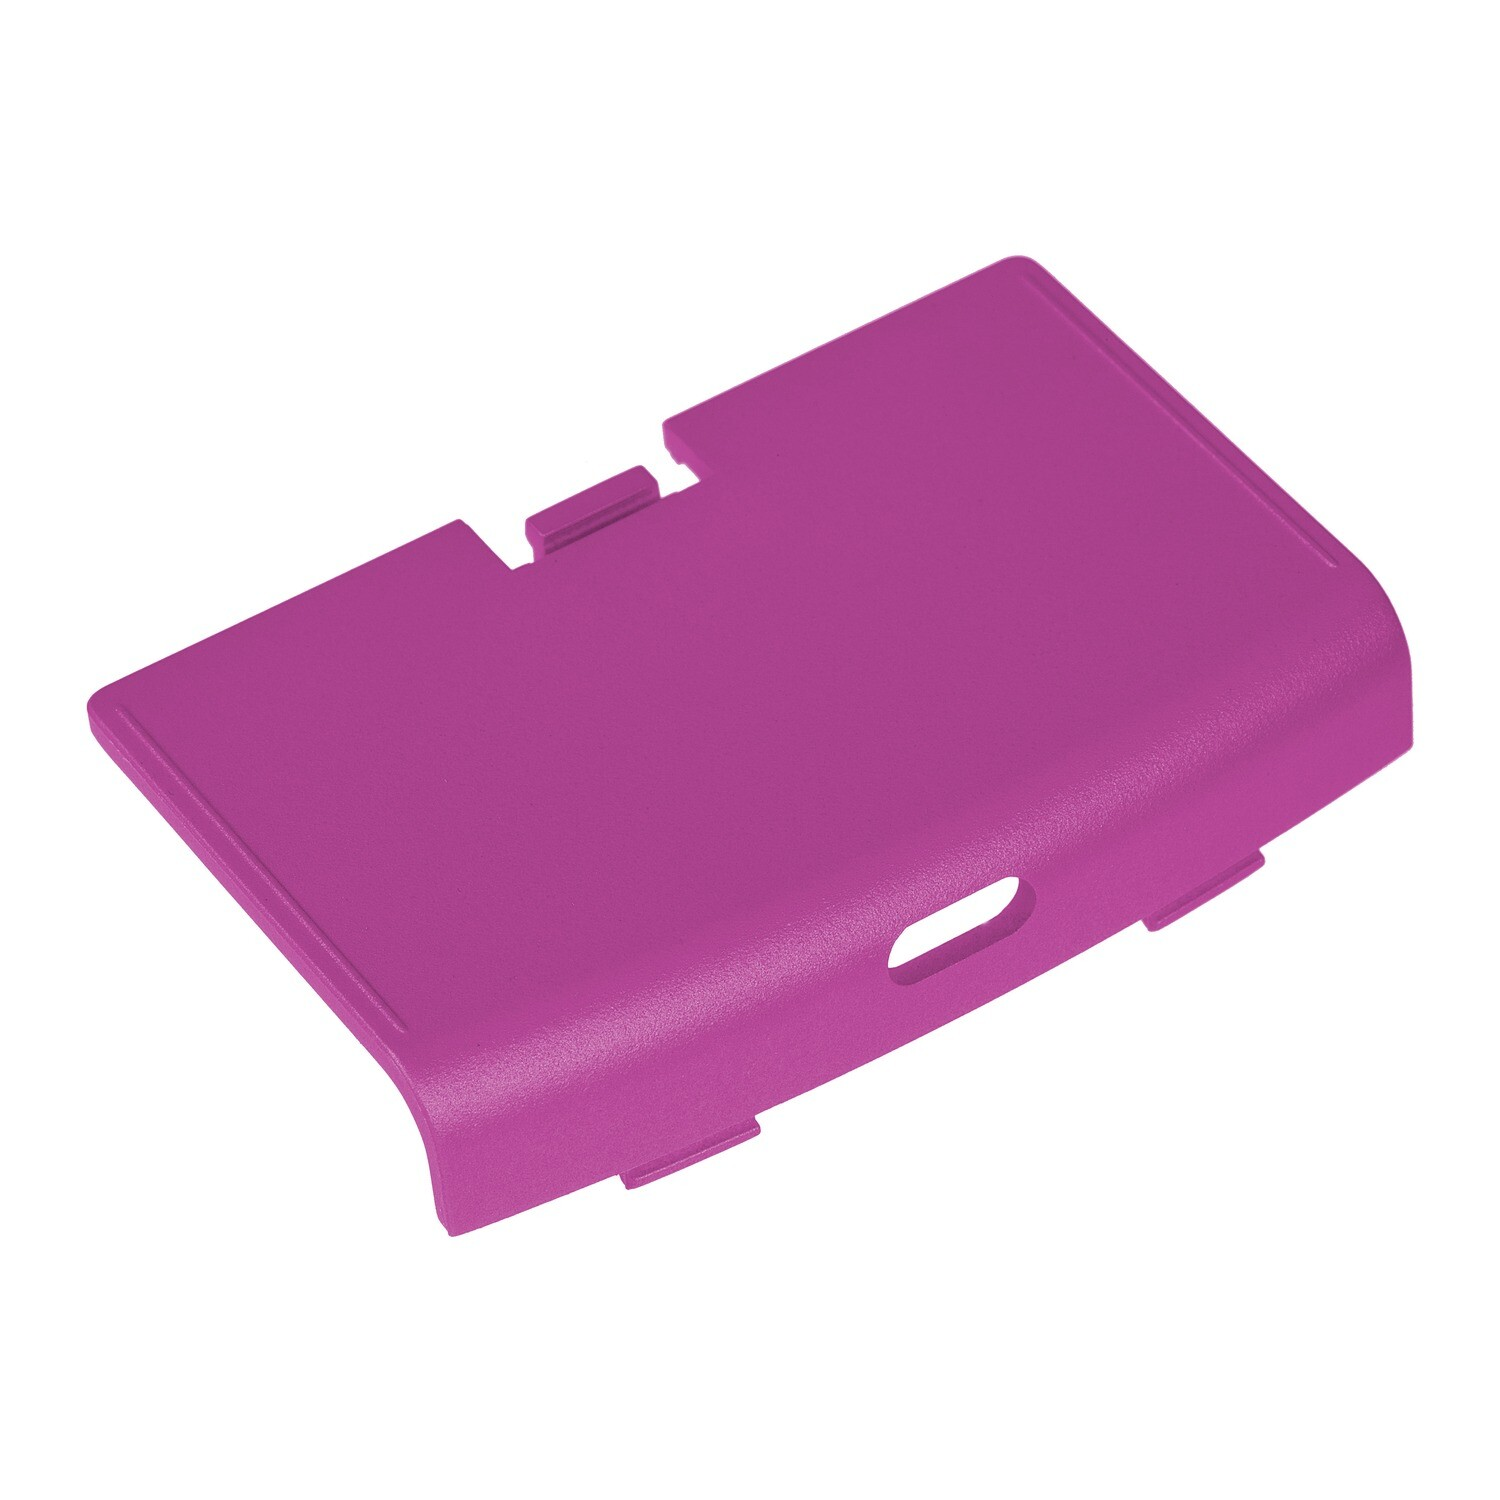 Game Boy Advance USB-C Battery Cover (Pearl Pink)